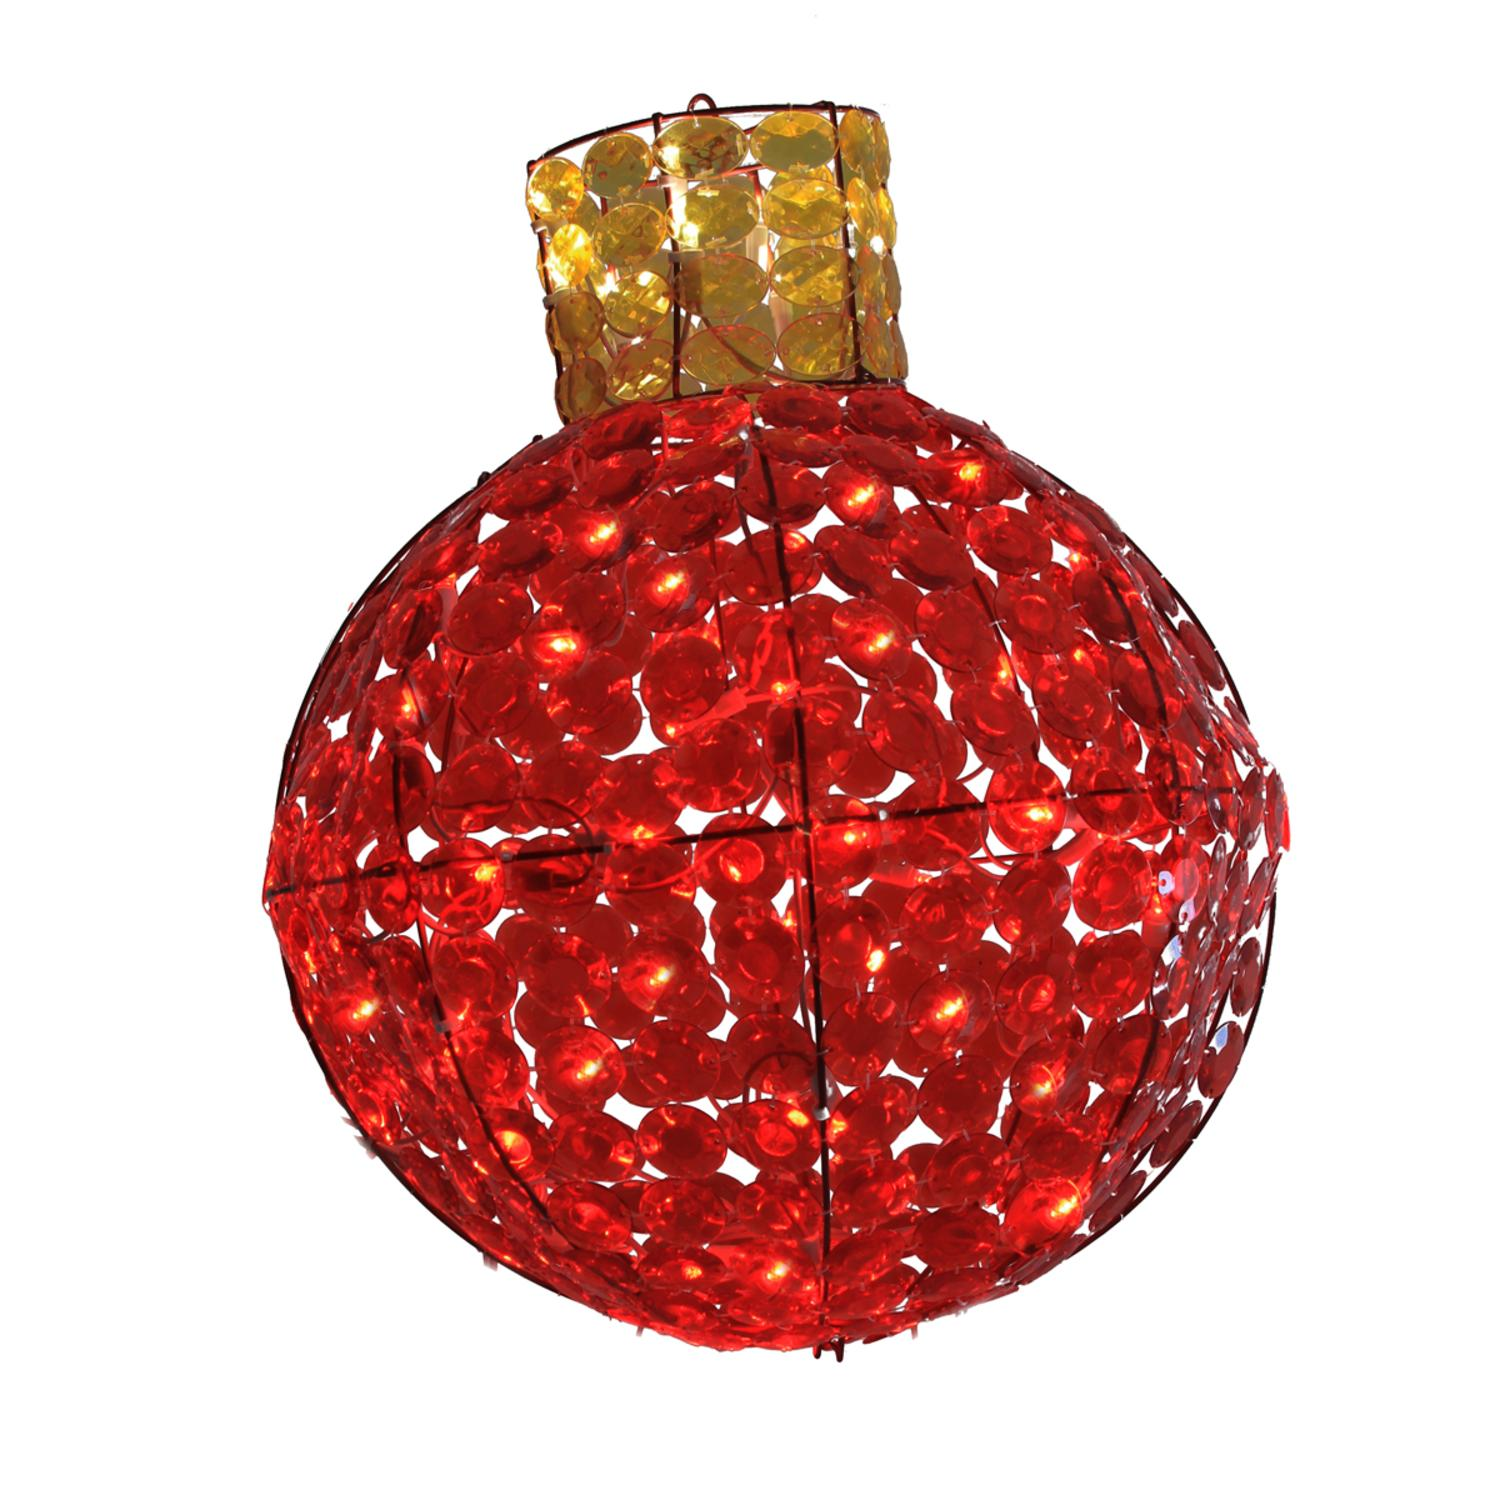 LB International 24 in. LED Lighted Red and Amber Faceted Light Bulb Christmas Light Display